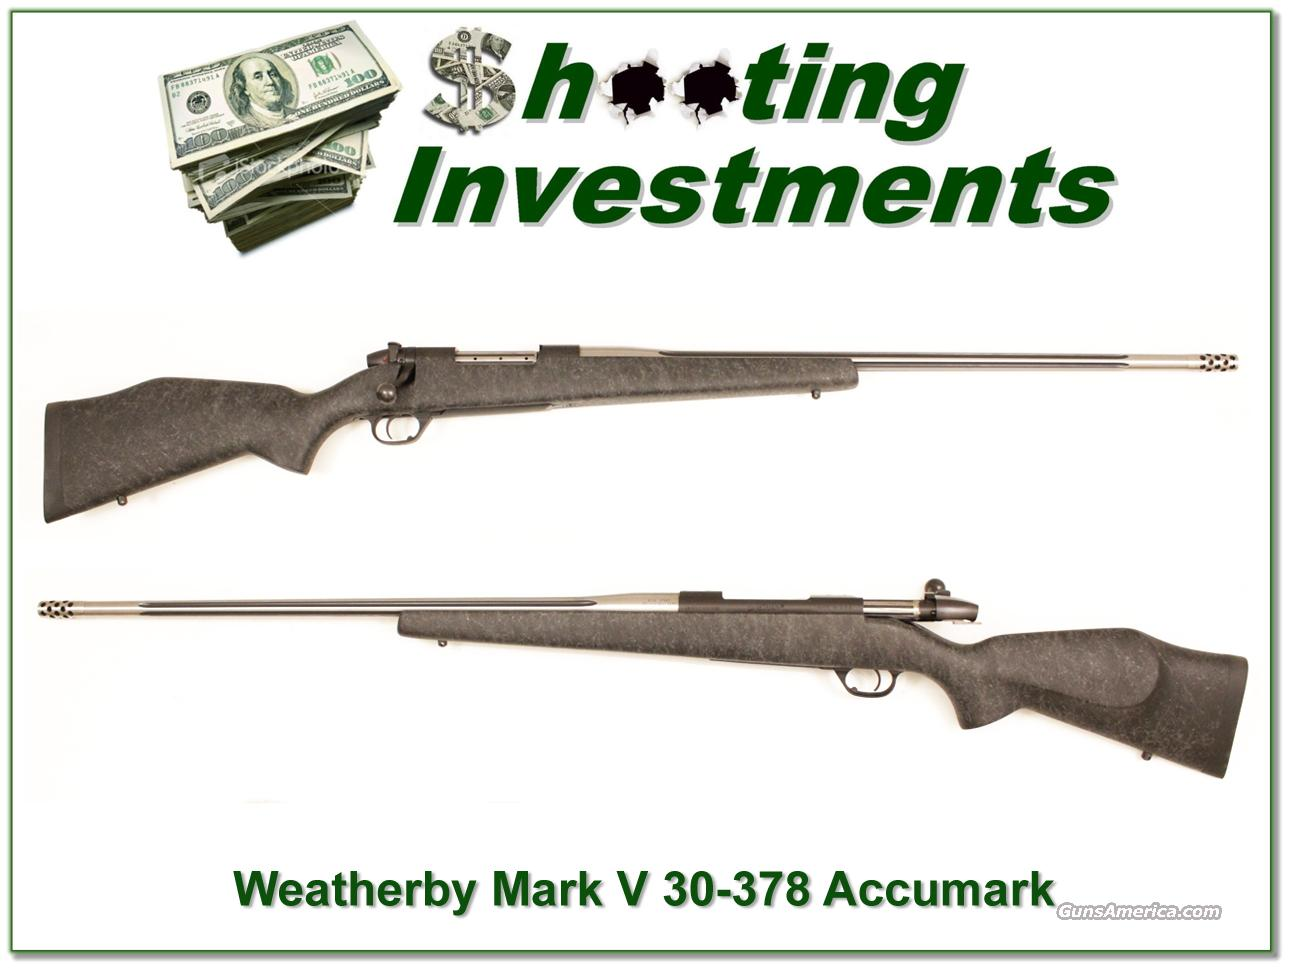 Weatherby Mark V Accumark 30-378 near new  Guns > Rifles > Weatherby Rifles > Sporting